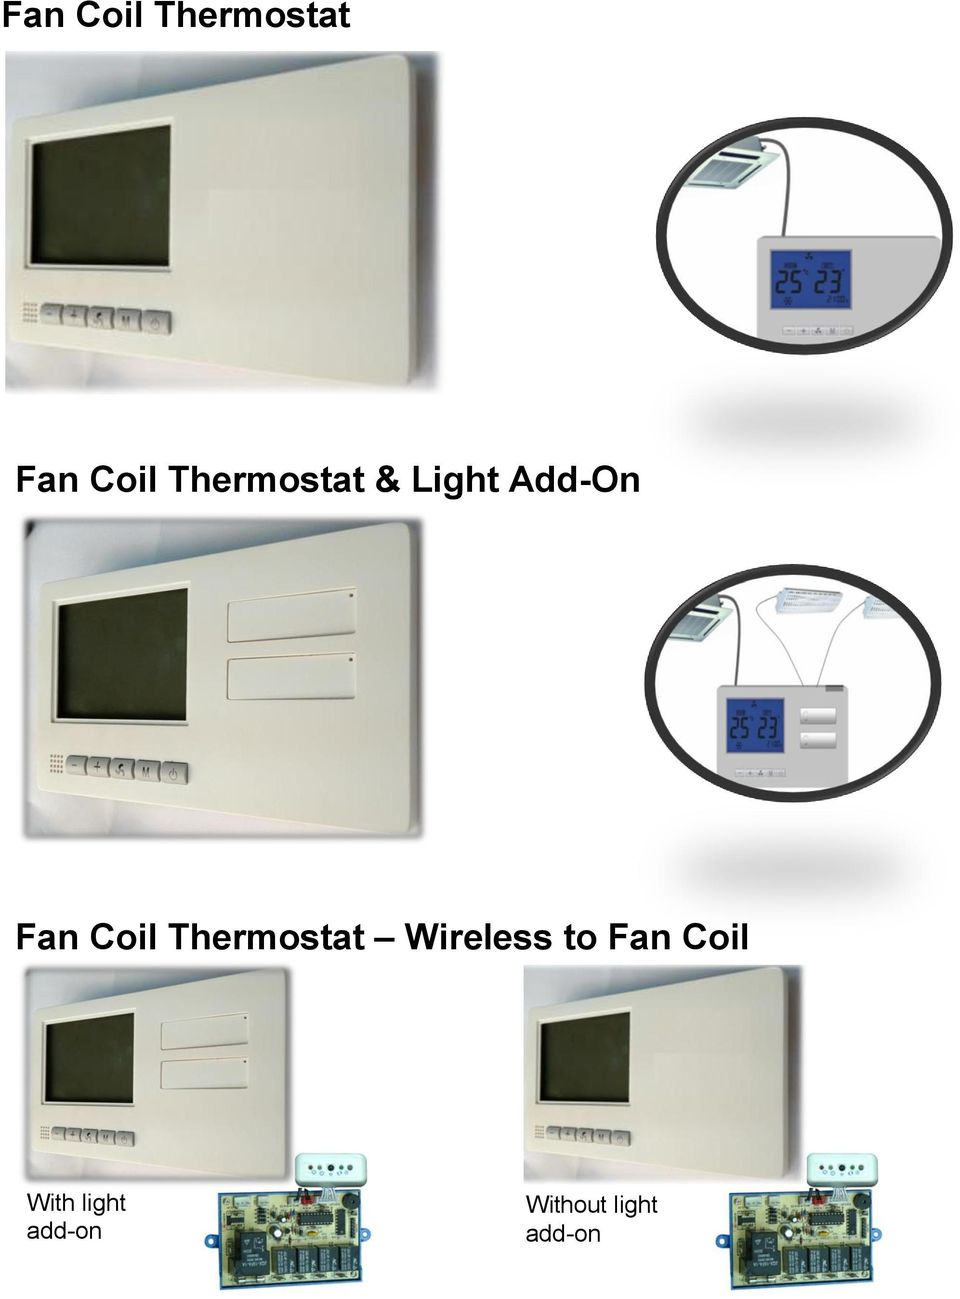 Coil Thermostat Wireless to Fan